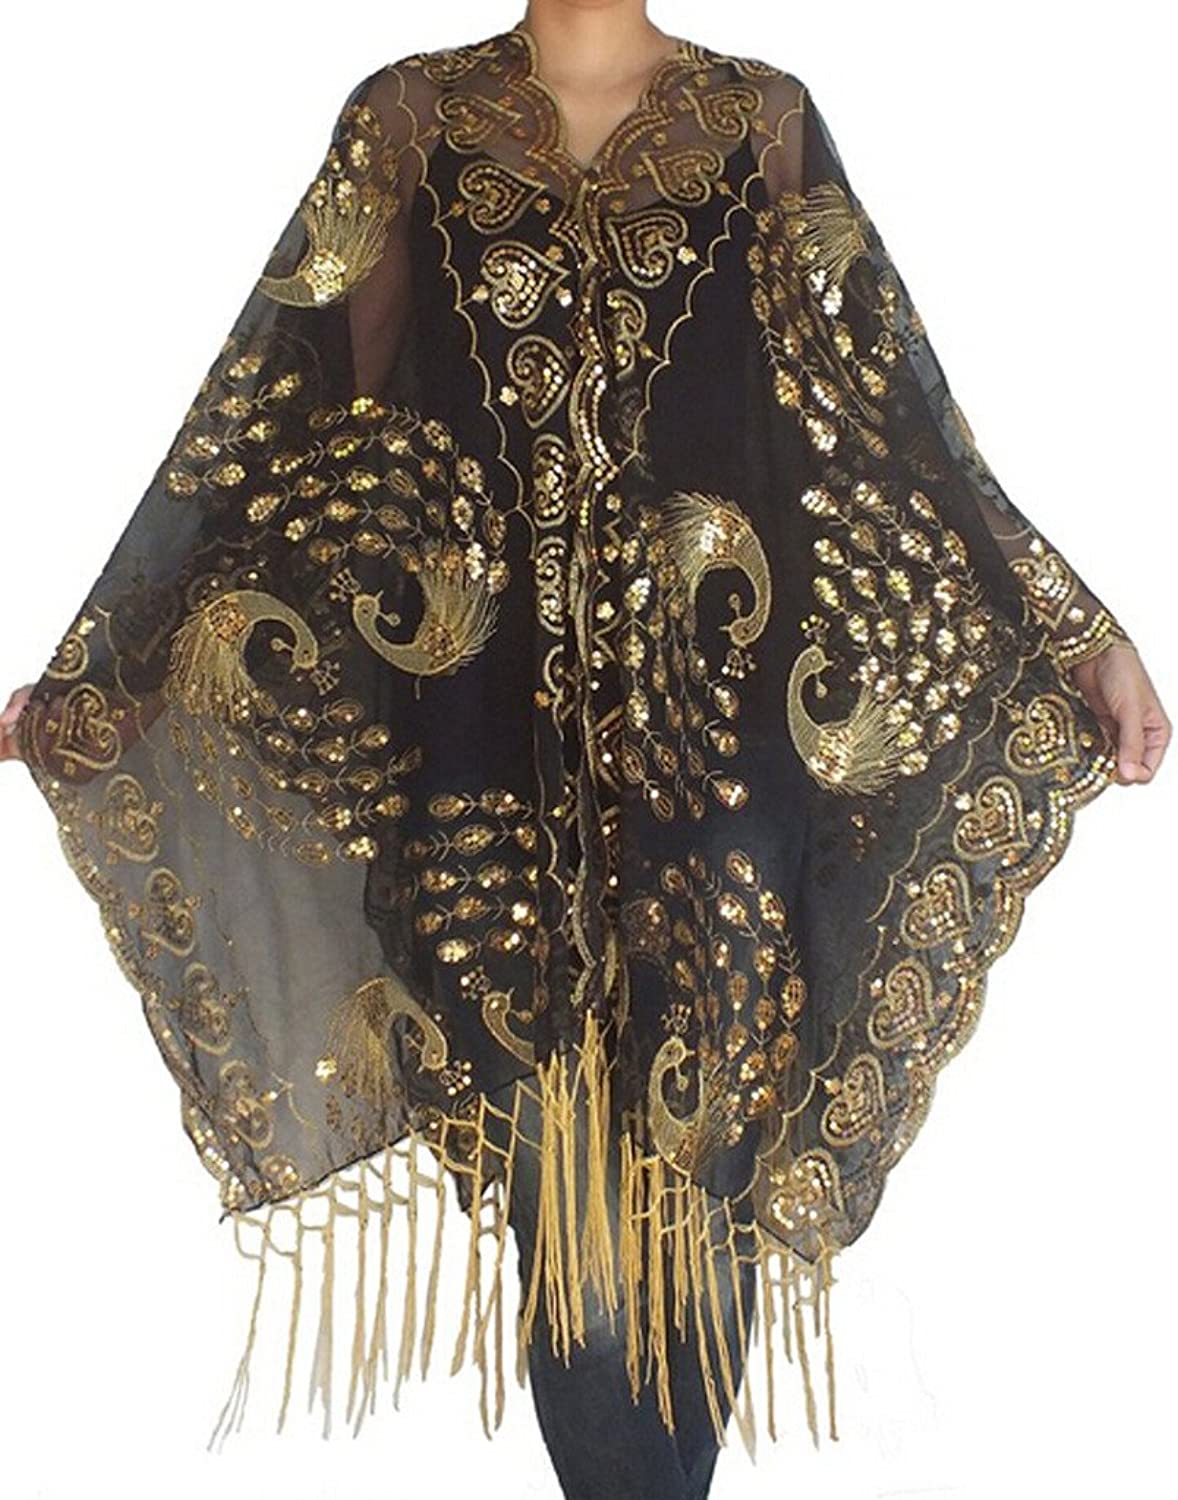 1920s Costumes: Flapper, Great Gatsby, Gangster Girl  Peacock Phoenix Embroidery Sequins Wedding Scarf Shawls $19.99 AT vintagedancer.com